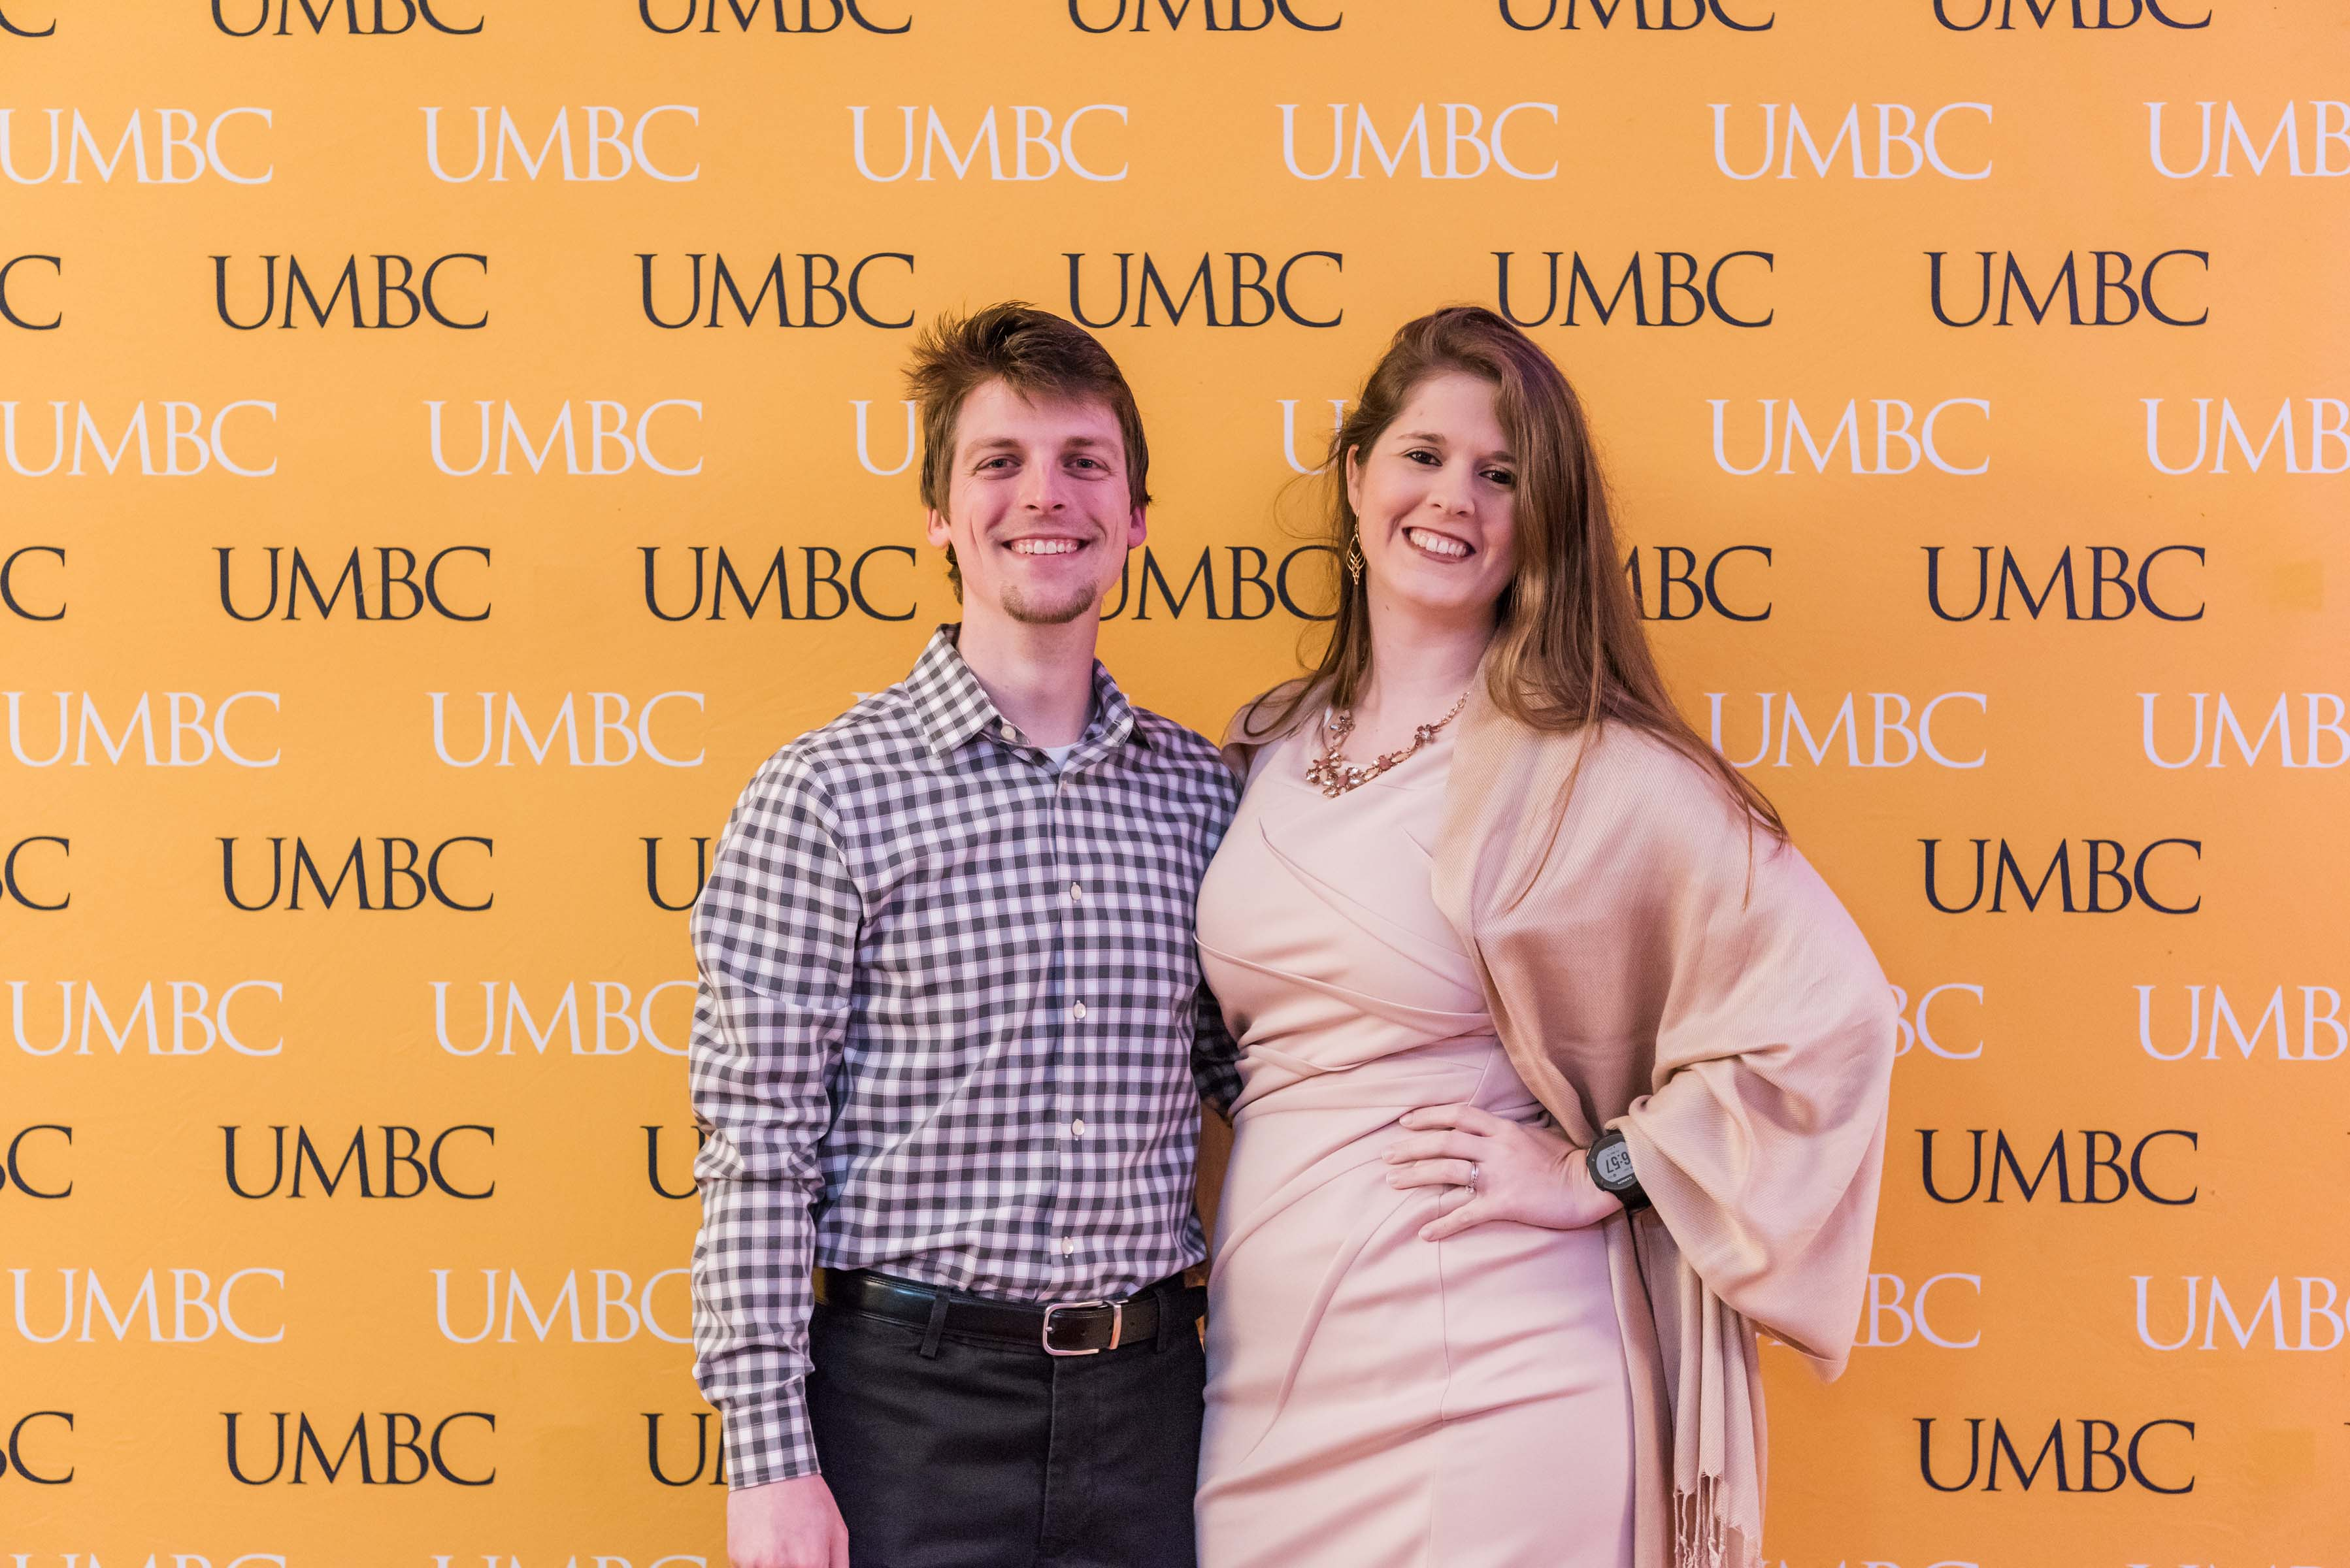 Man and women pose together in front of UMBC wall for wine tasting